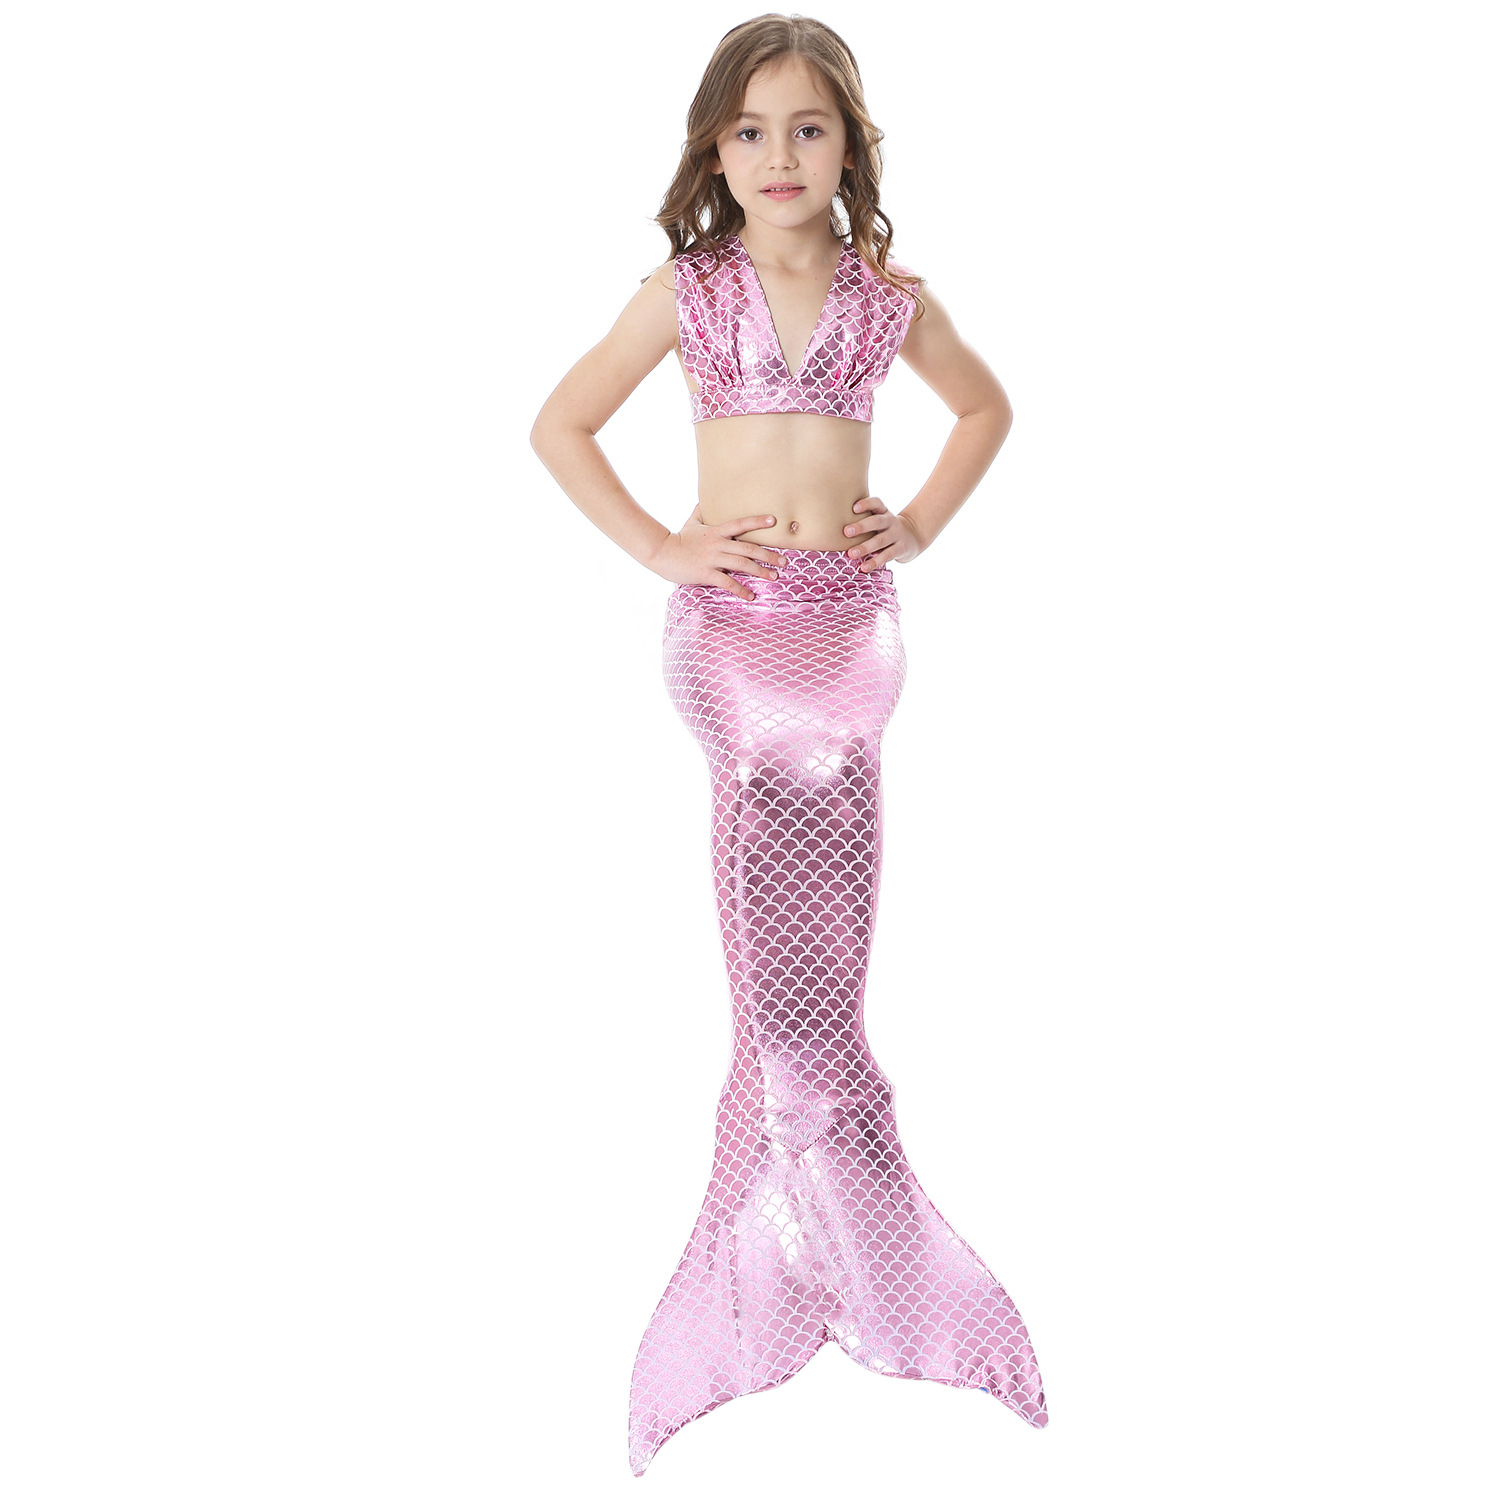 3 Pieces Baby Kids Mermaid Tail for Girls Kids Cosplay Costume Swimsuit Swimmable Children Mermaid Tails with Bikini Set